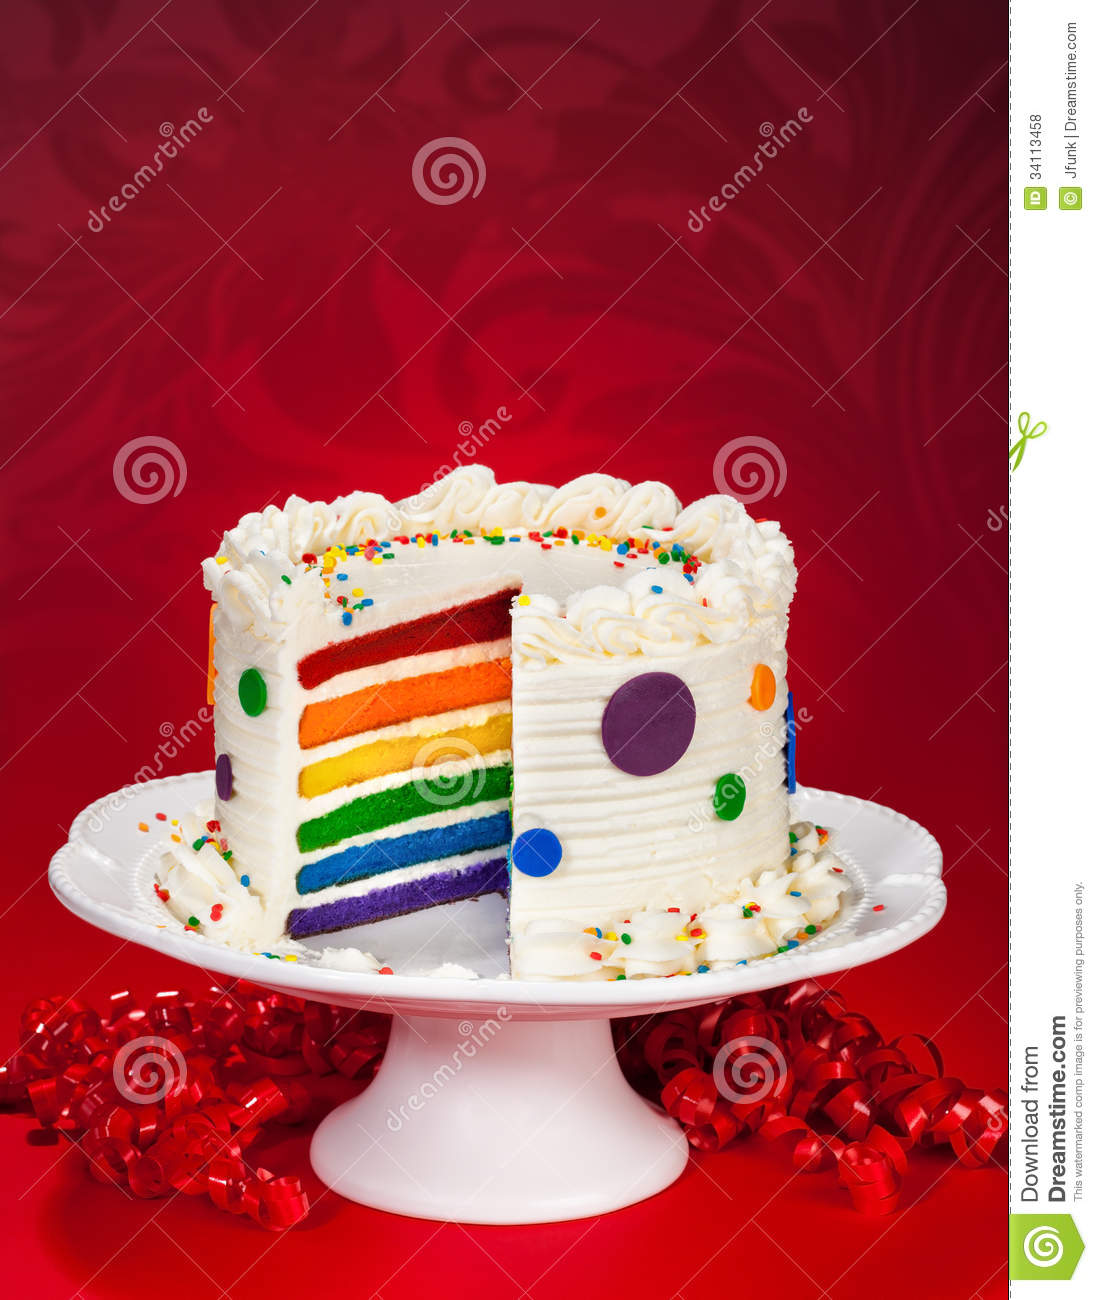 Birthday Cake Royalty Free Stock Photos Image 34113458